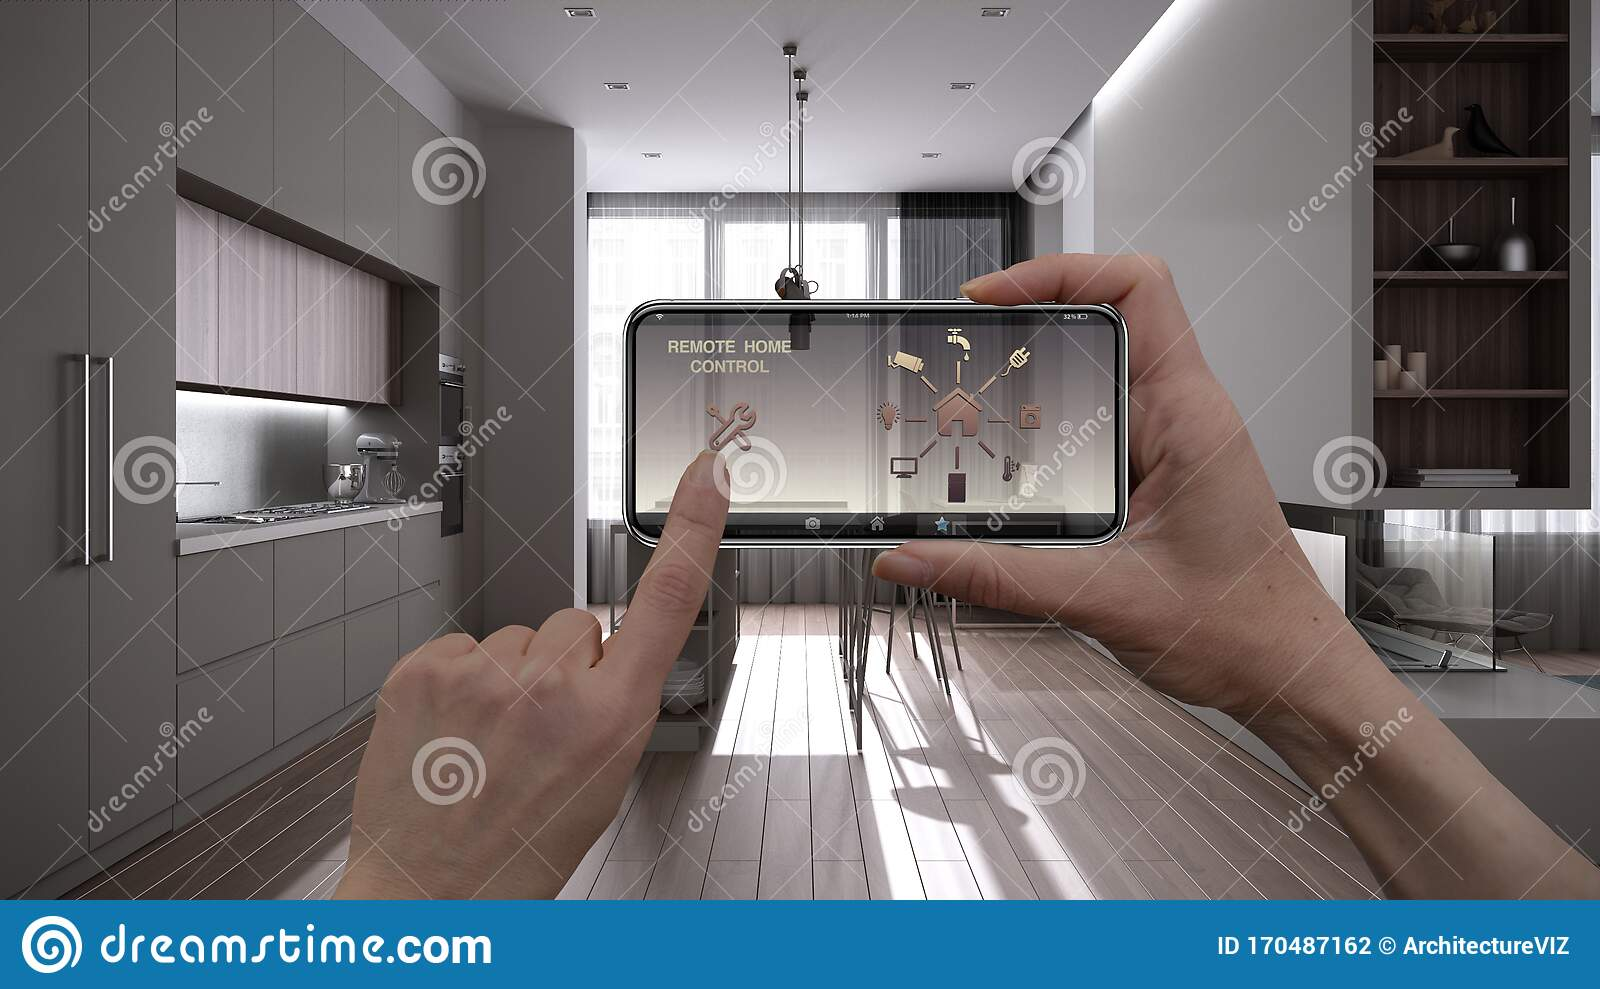 Remote Home Control System On A Digital Smart Phone Tablet. Device ...